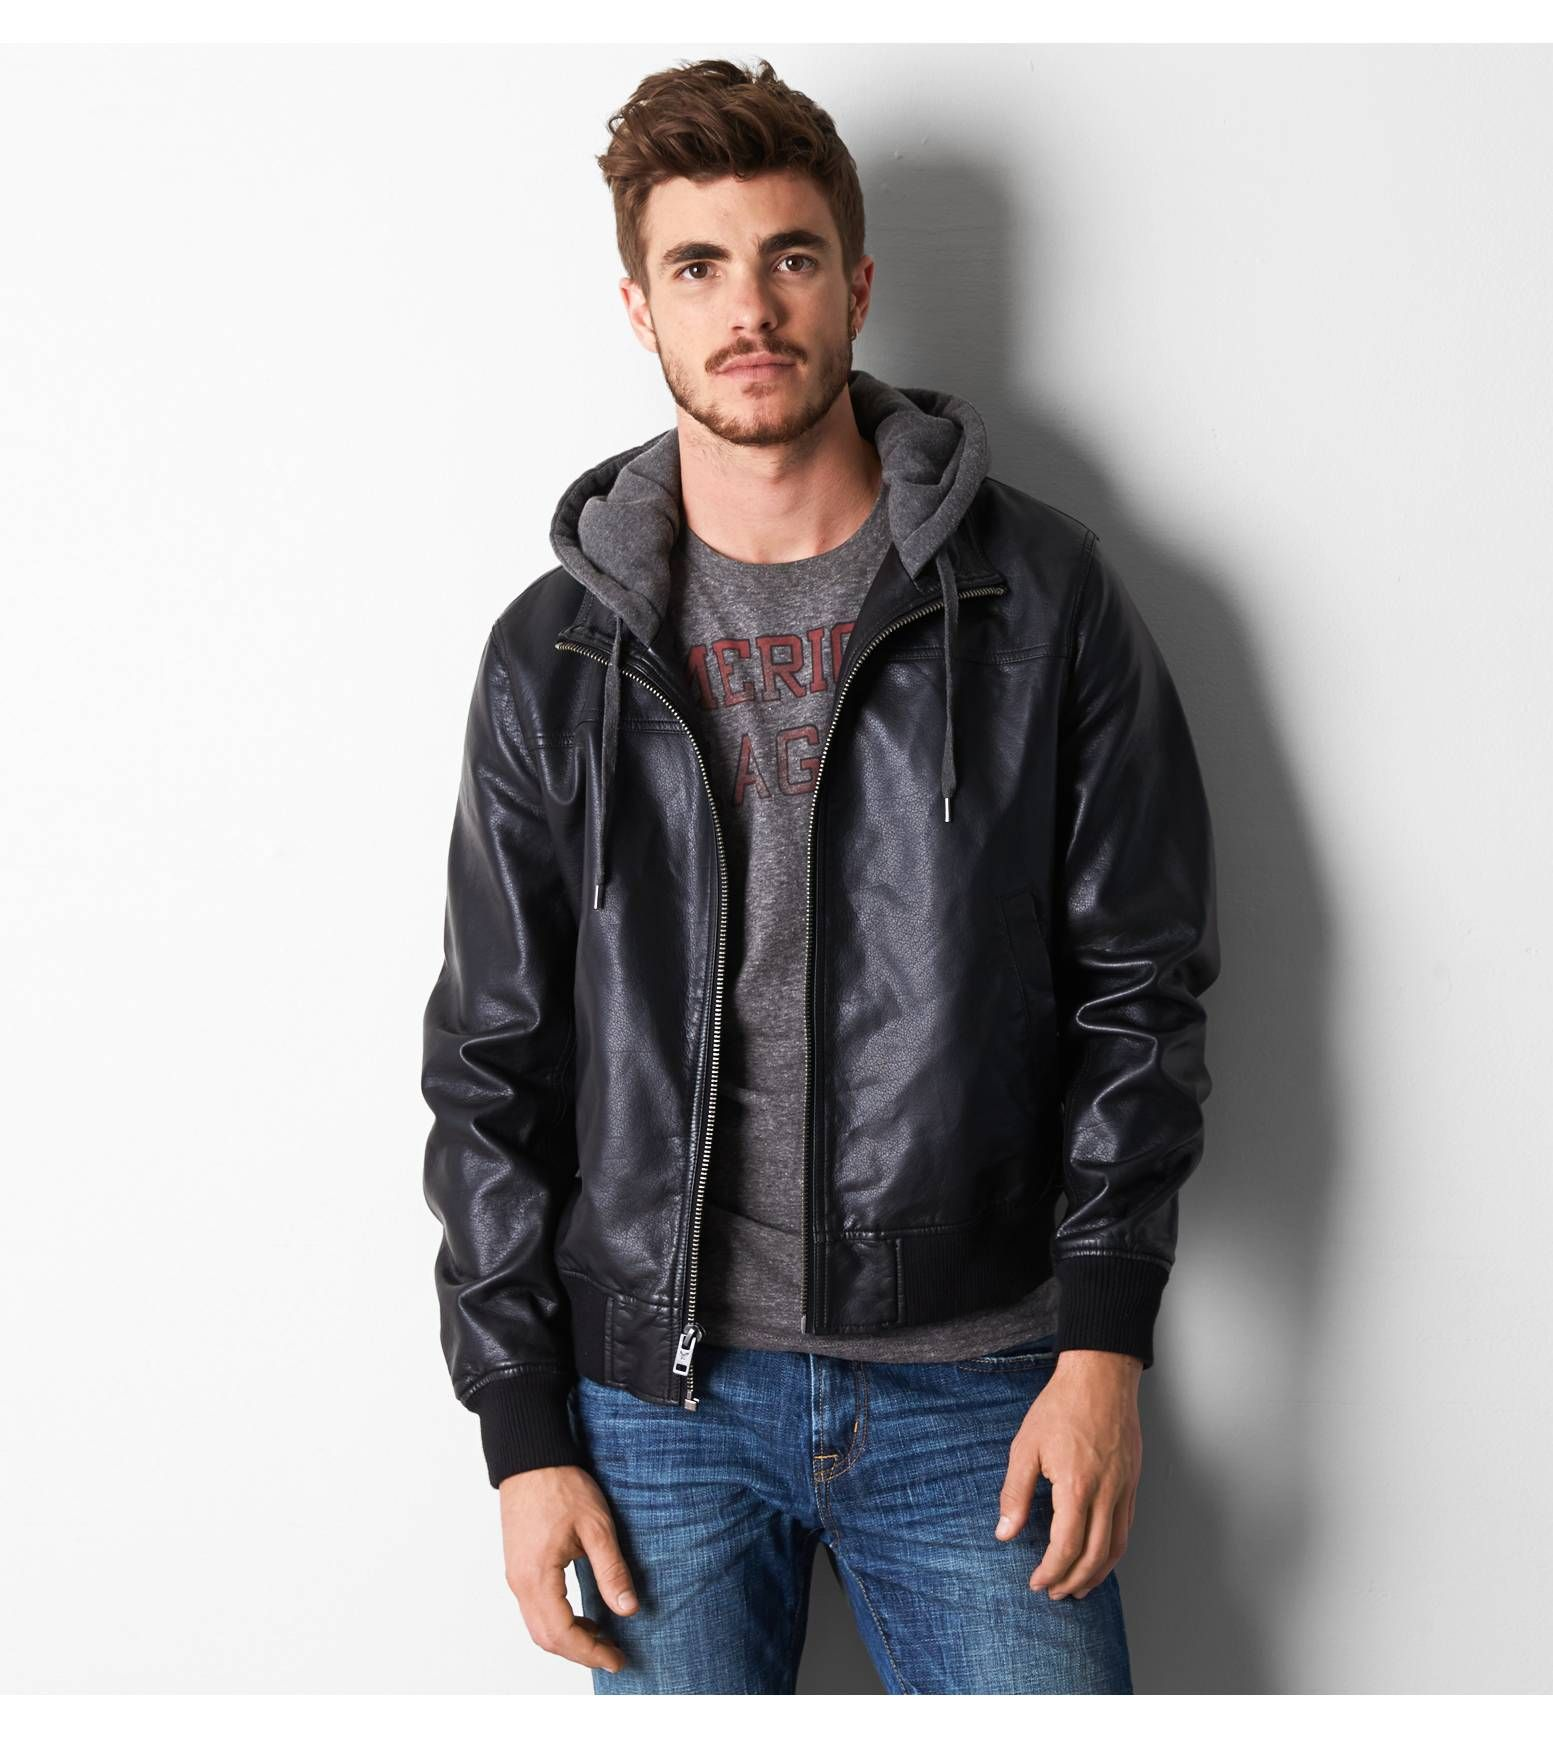 Leather jacket instagram - Black Aeo Hooded Bomber Jacket Show Us Your Aeostyle On Instagram Or Twitter For